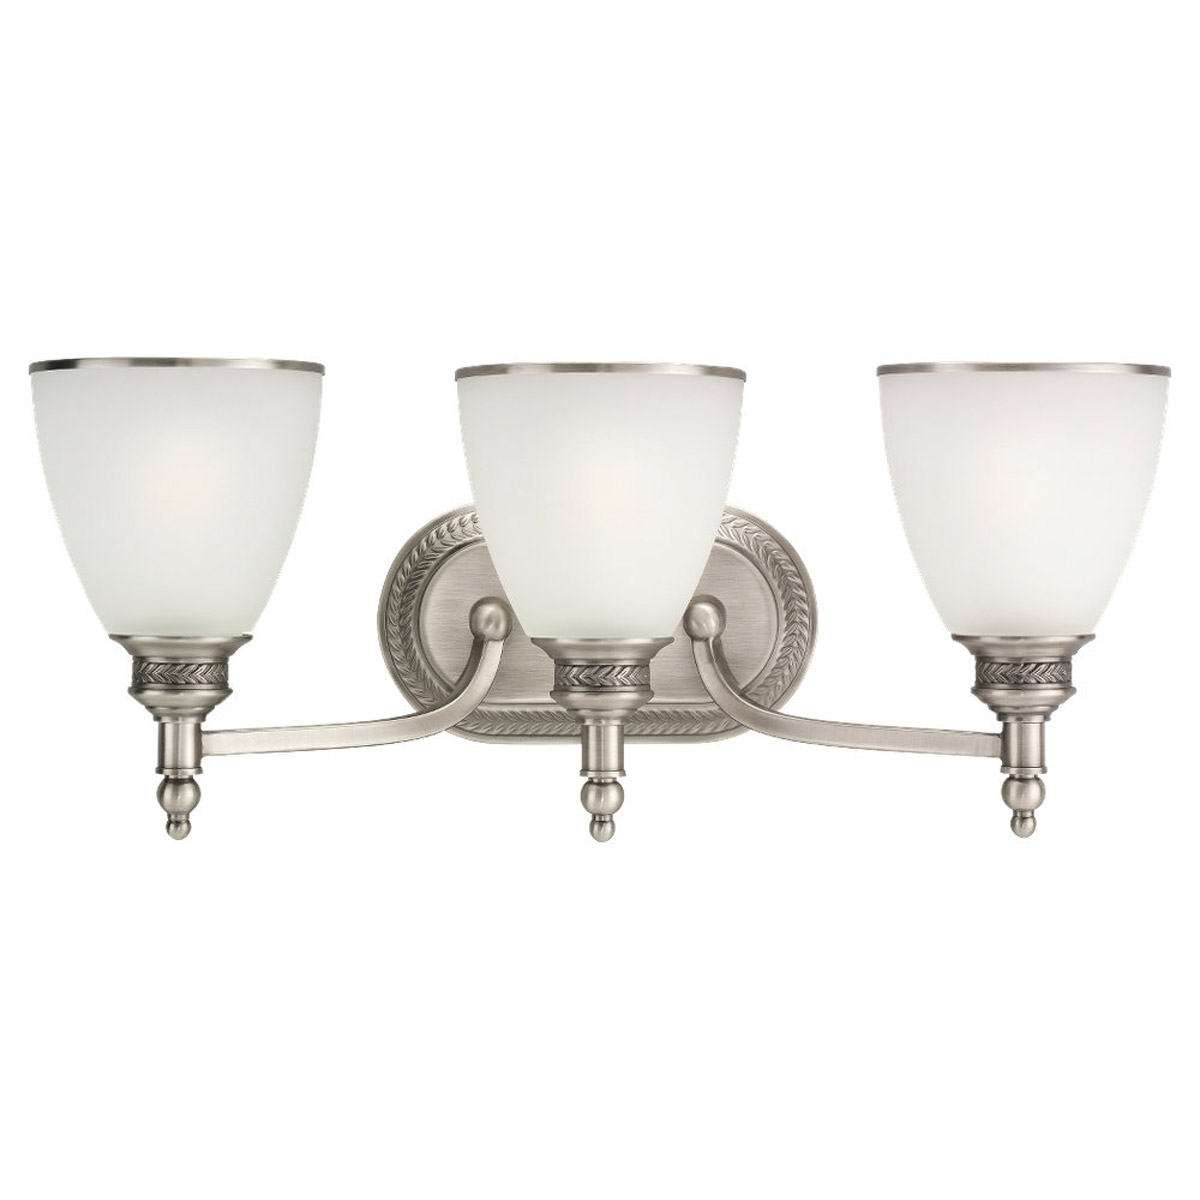 Sea Gull Lighting Laurel Leaf 3 Light Bath Vanity in Antique Brushed Nickel 44351-965 photo